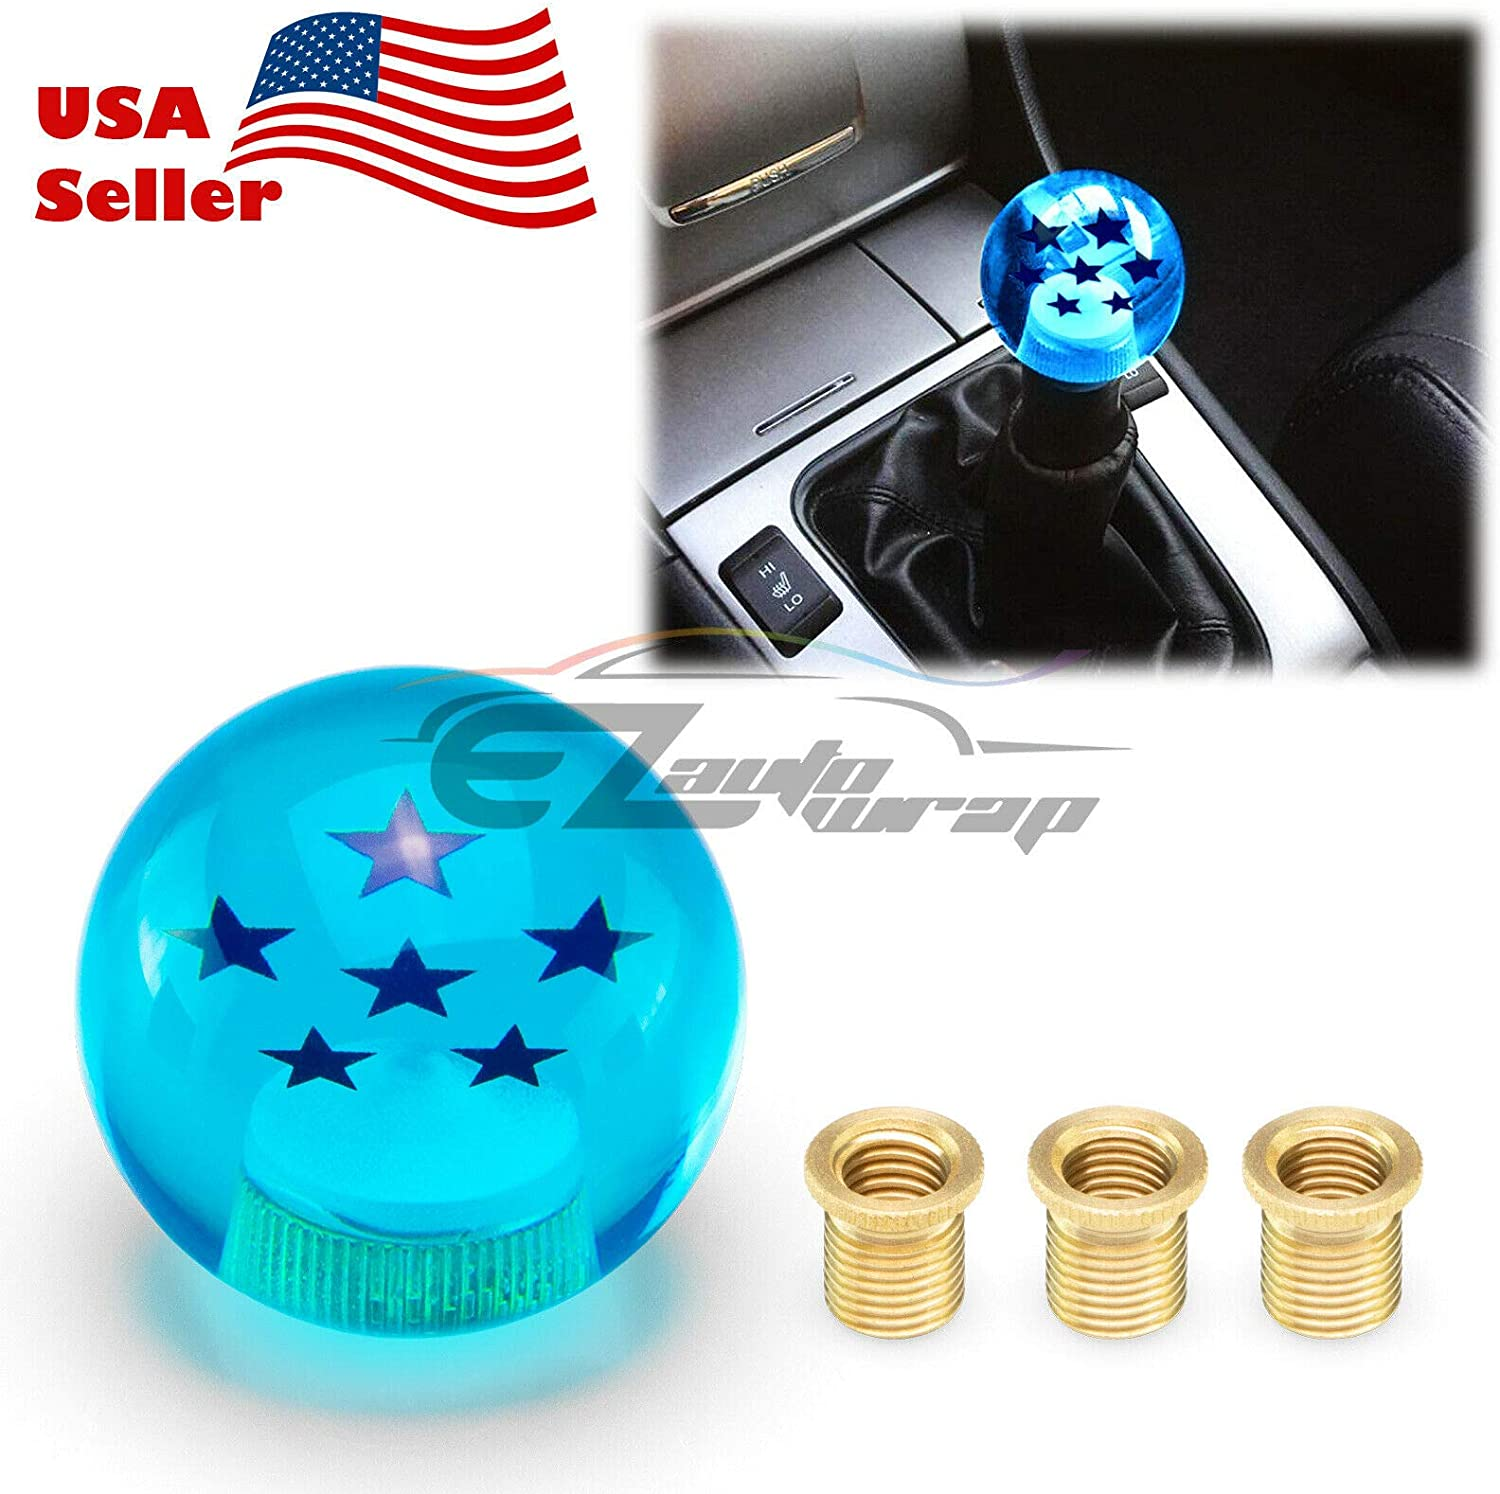 EZAUTOWRAP Universal Orange Dragon Ball Z 7 Star 54mm Shift Knob with Adapters Will Fit Most Cars